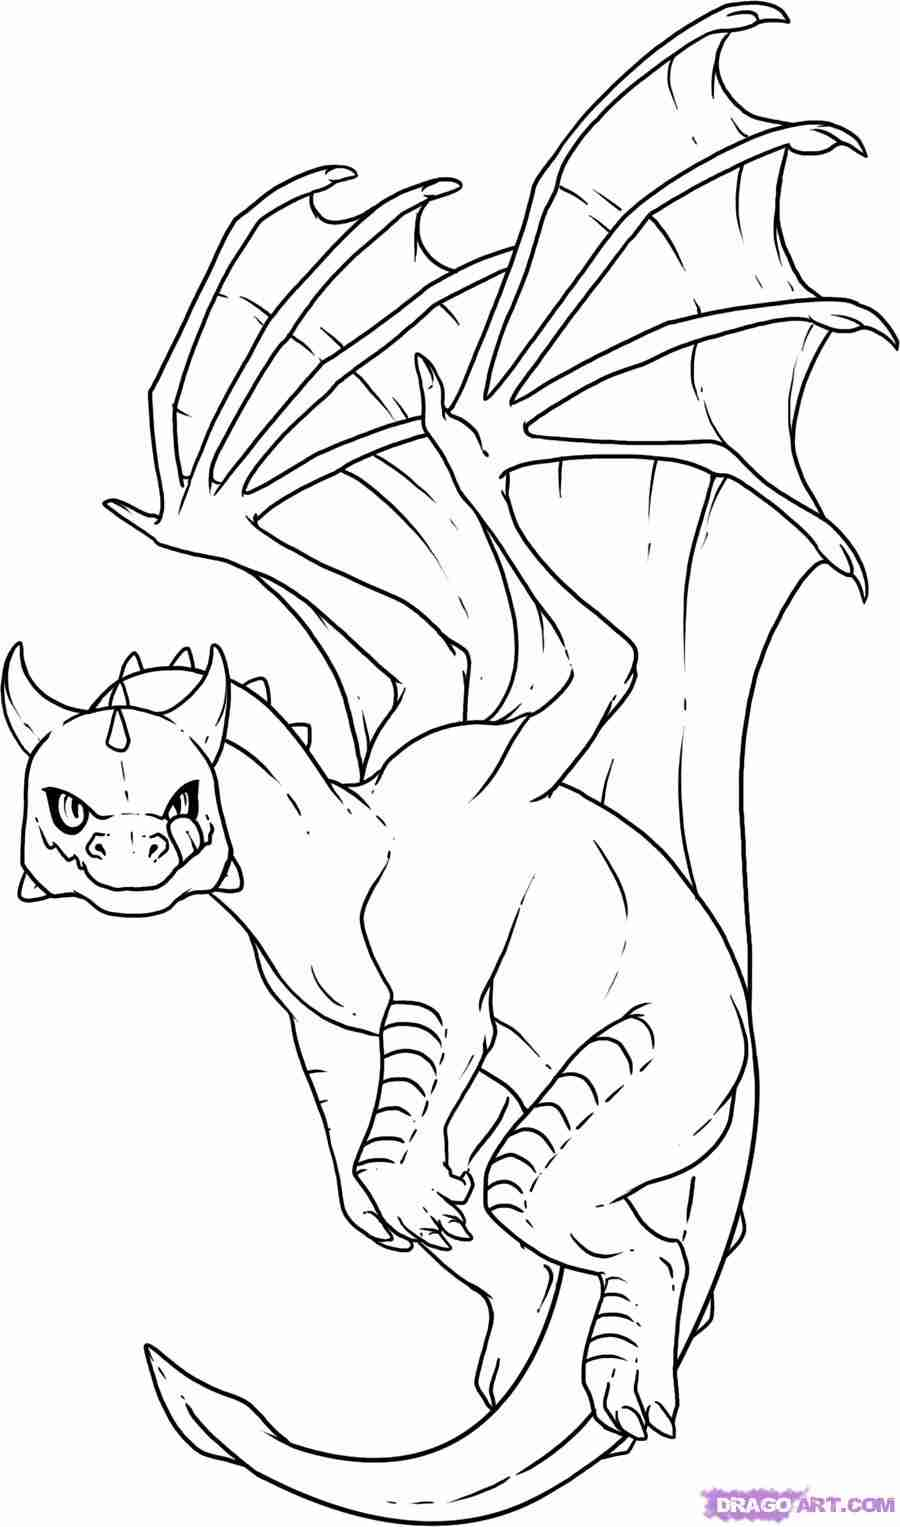 900x1527 Last Chance Dragon City Coloring Pages Coloring Pages Unusual